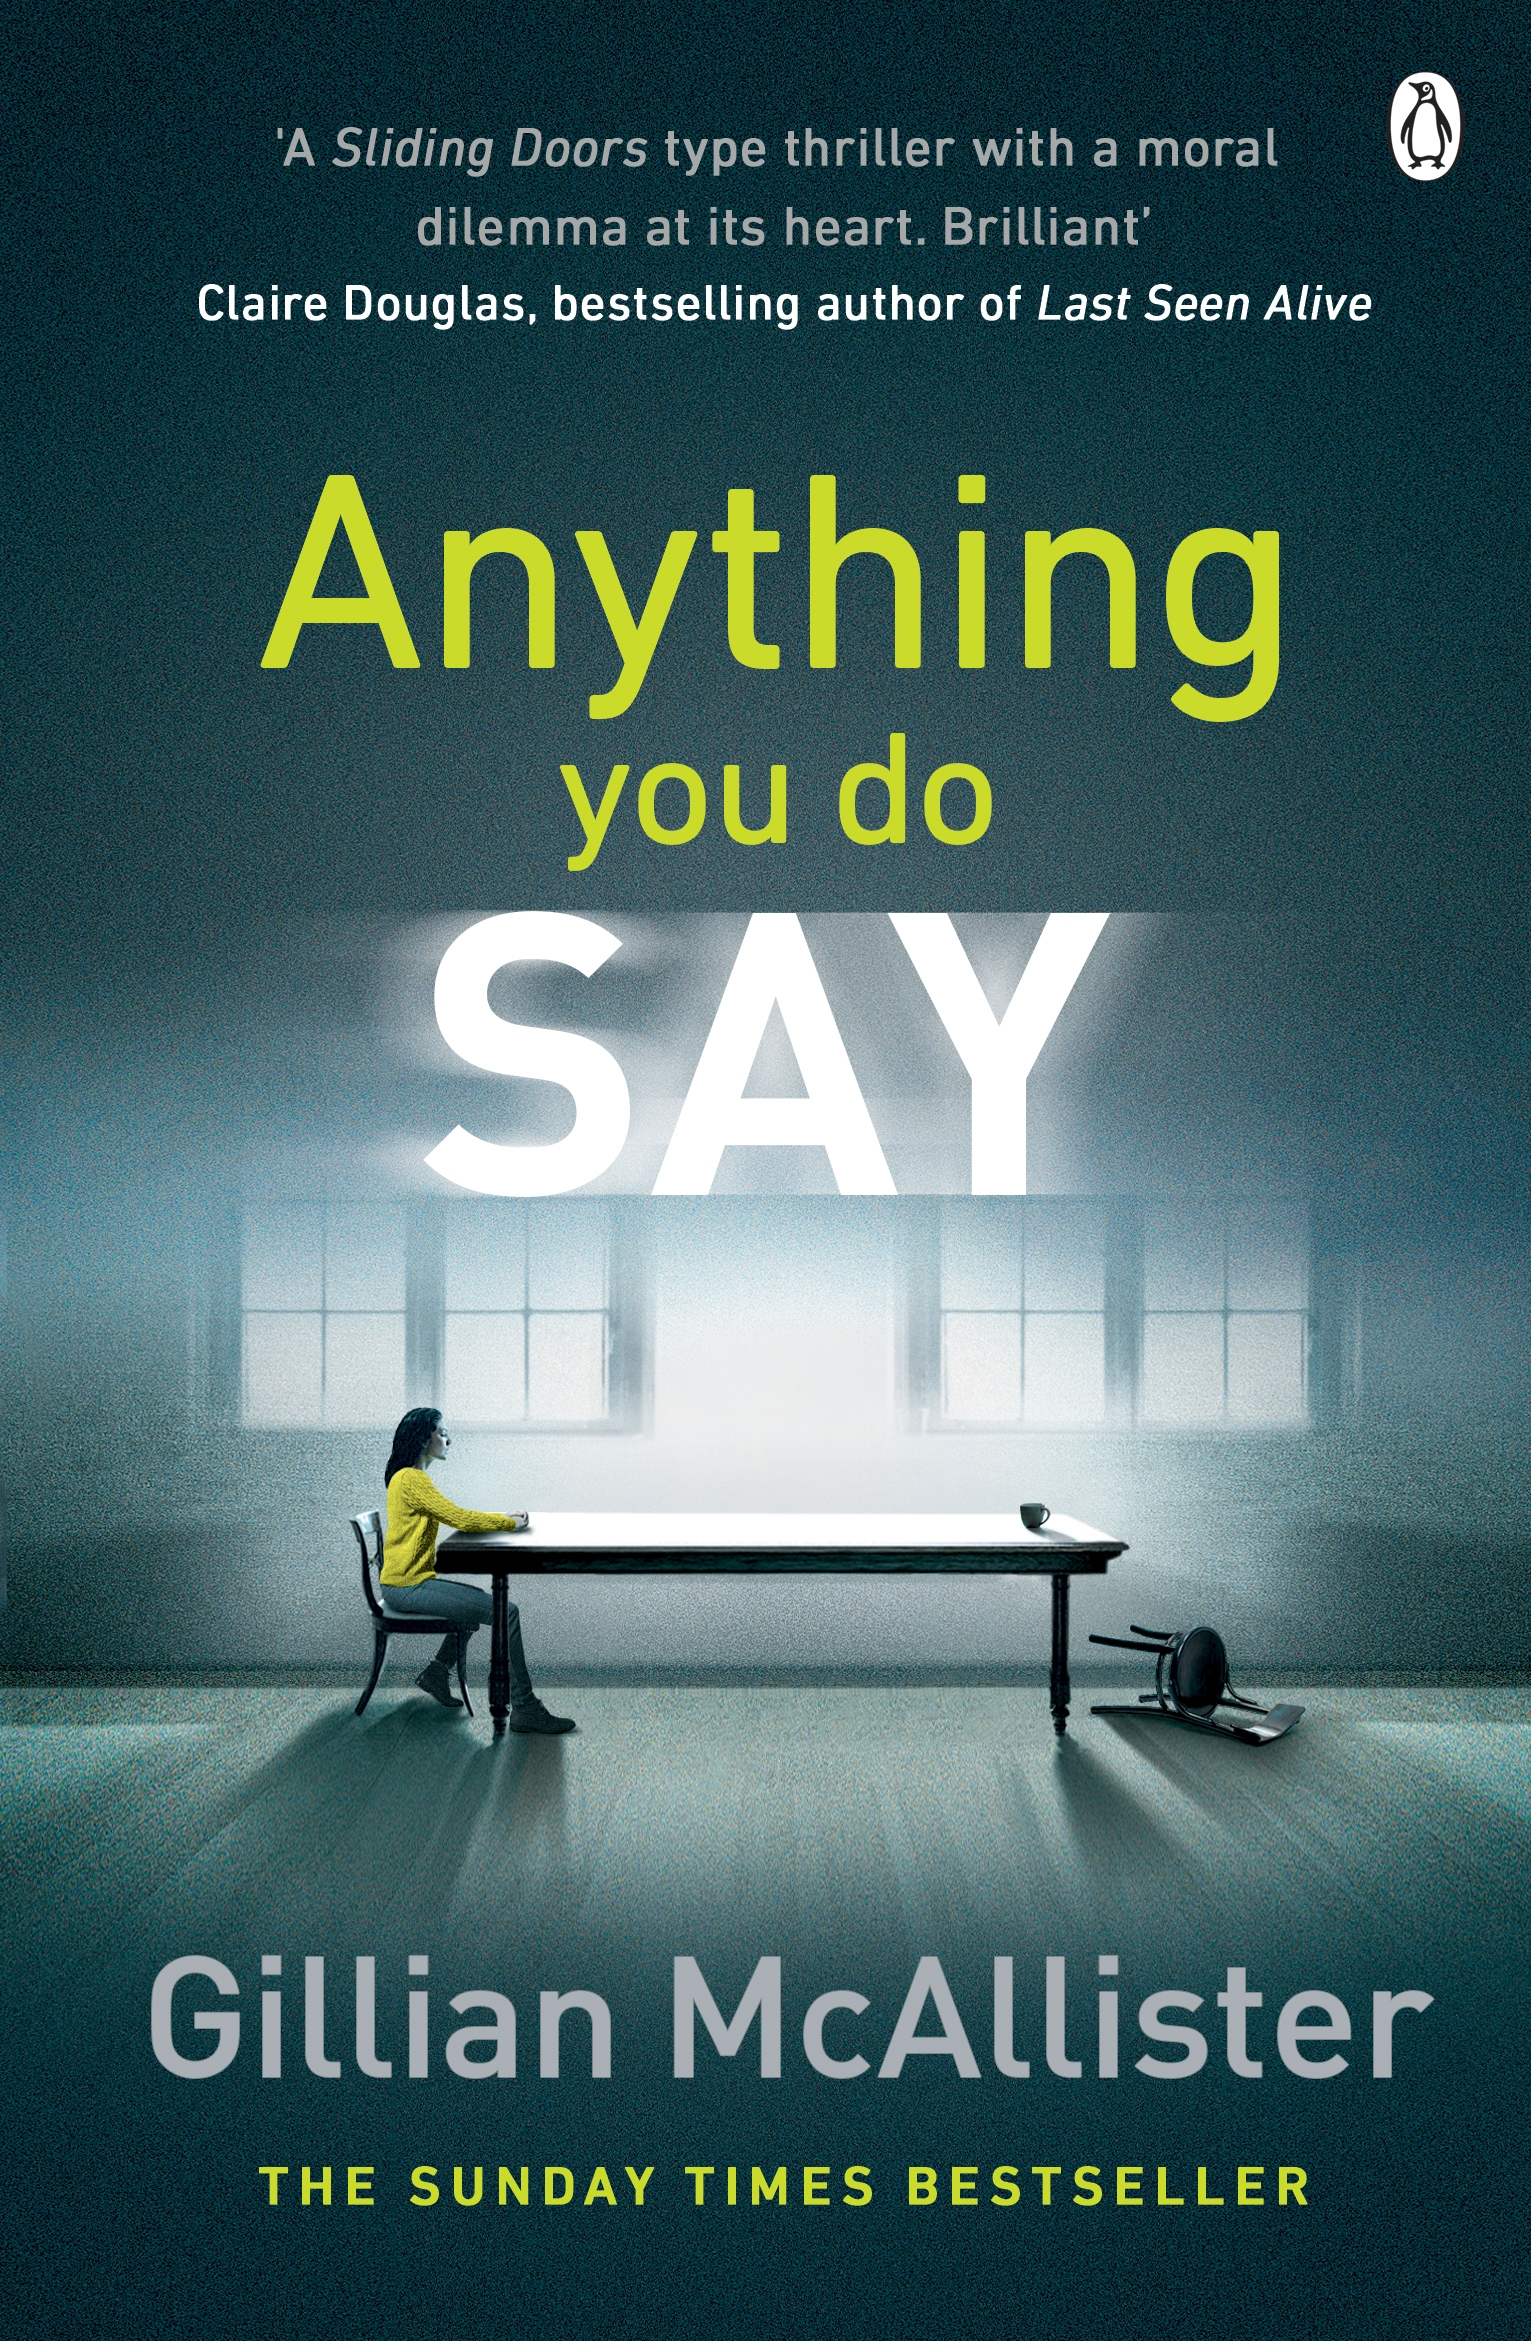 Anything You Do Say eBook blog tour – Day 5